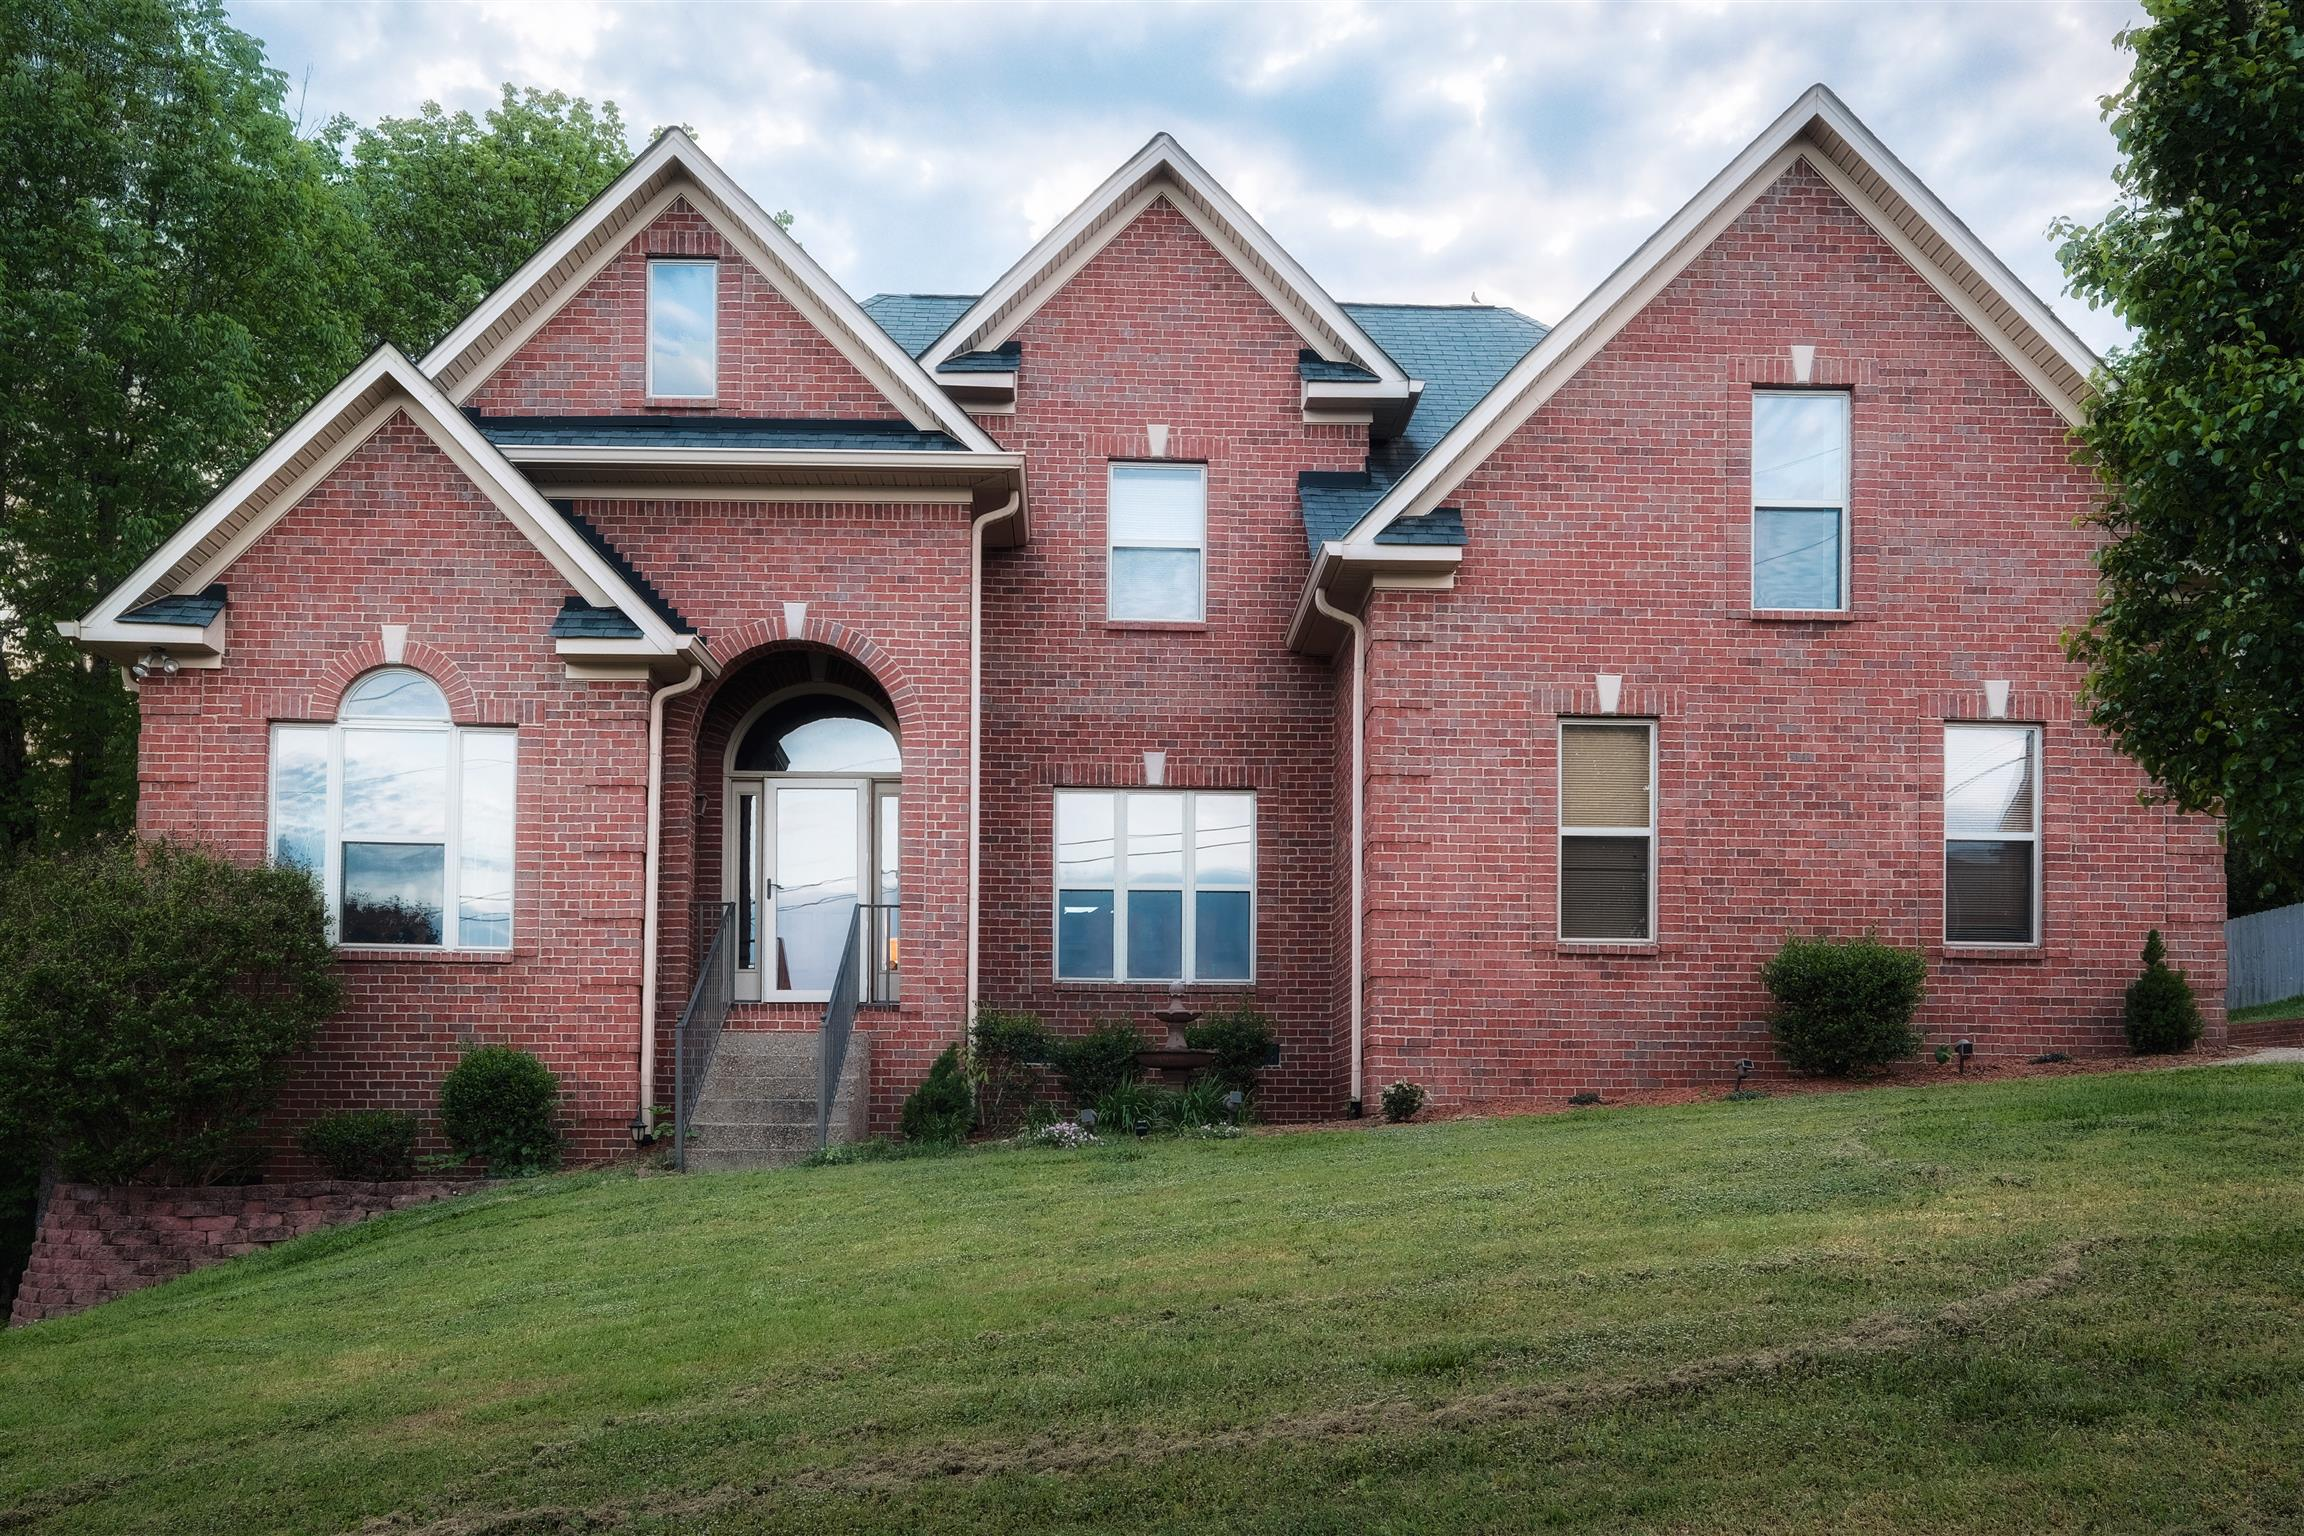 McFarlin Pointe Nolensville home for sale, 4 bedrooms, community pool